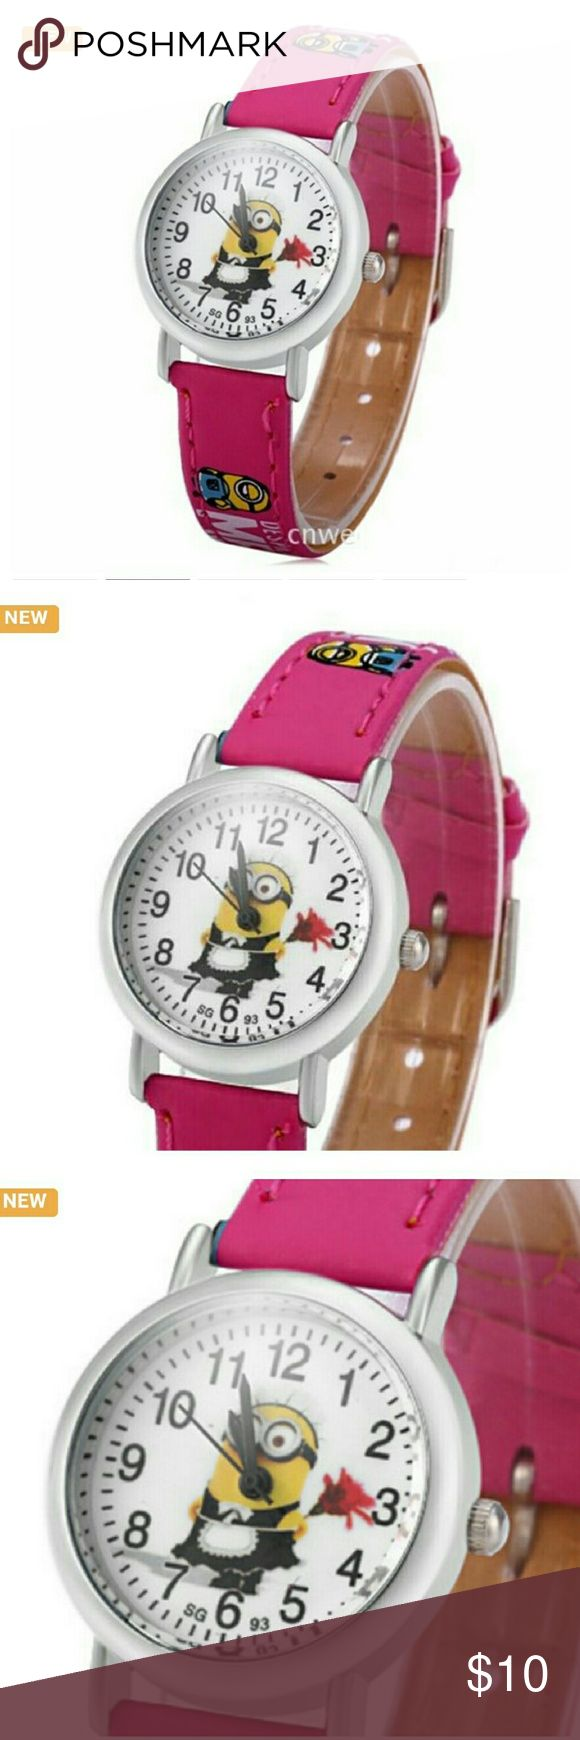 3D CHILDREN'S  ME MINION  WATCH Pink girl's watch. BRAND NEW ! EVERY KID ITEM COMES WITH A FREE GIFT ! Accessories Watches